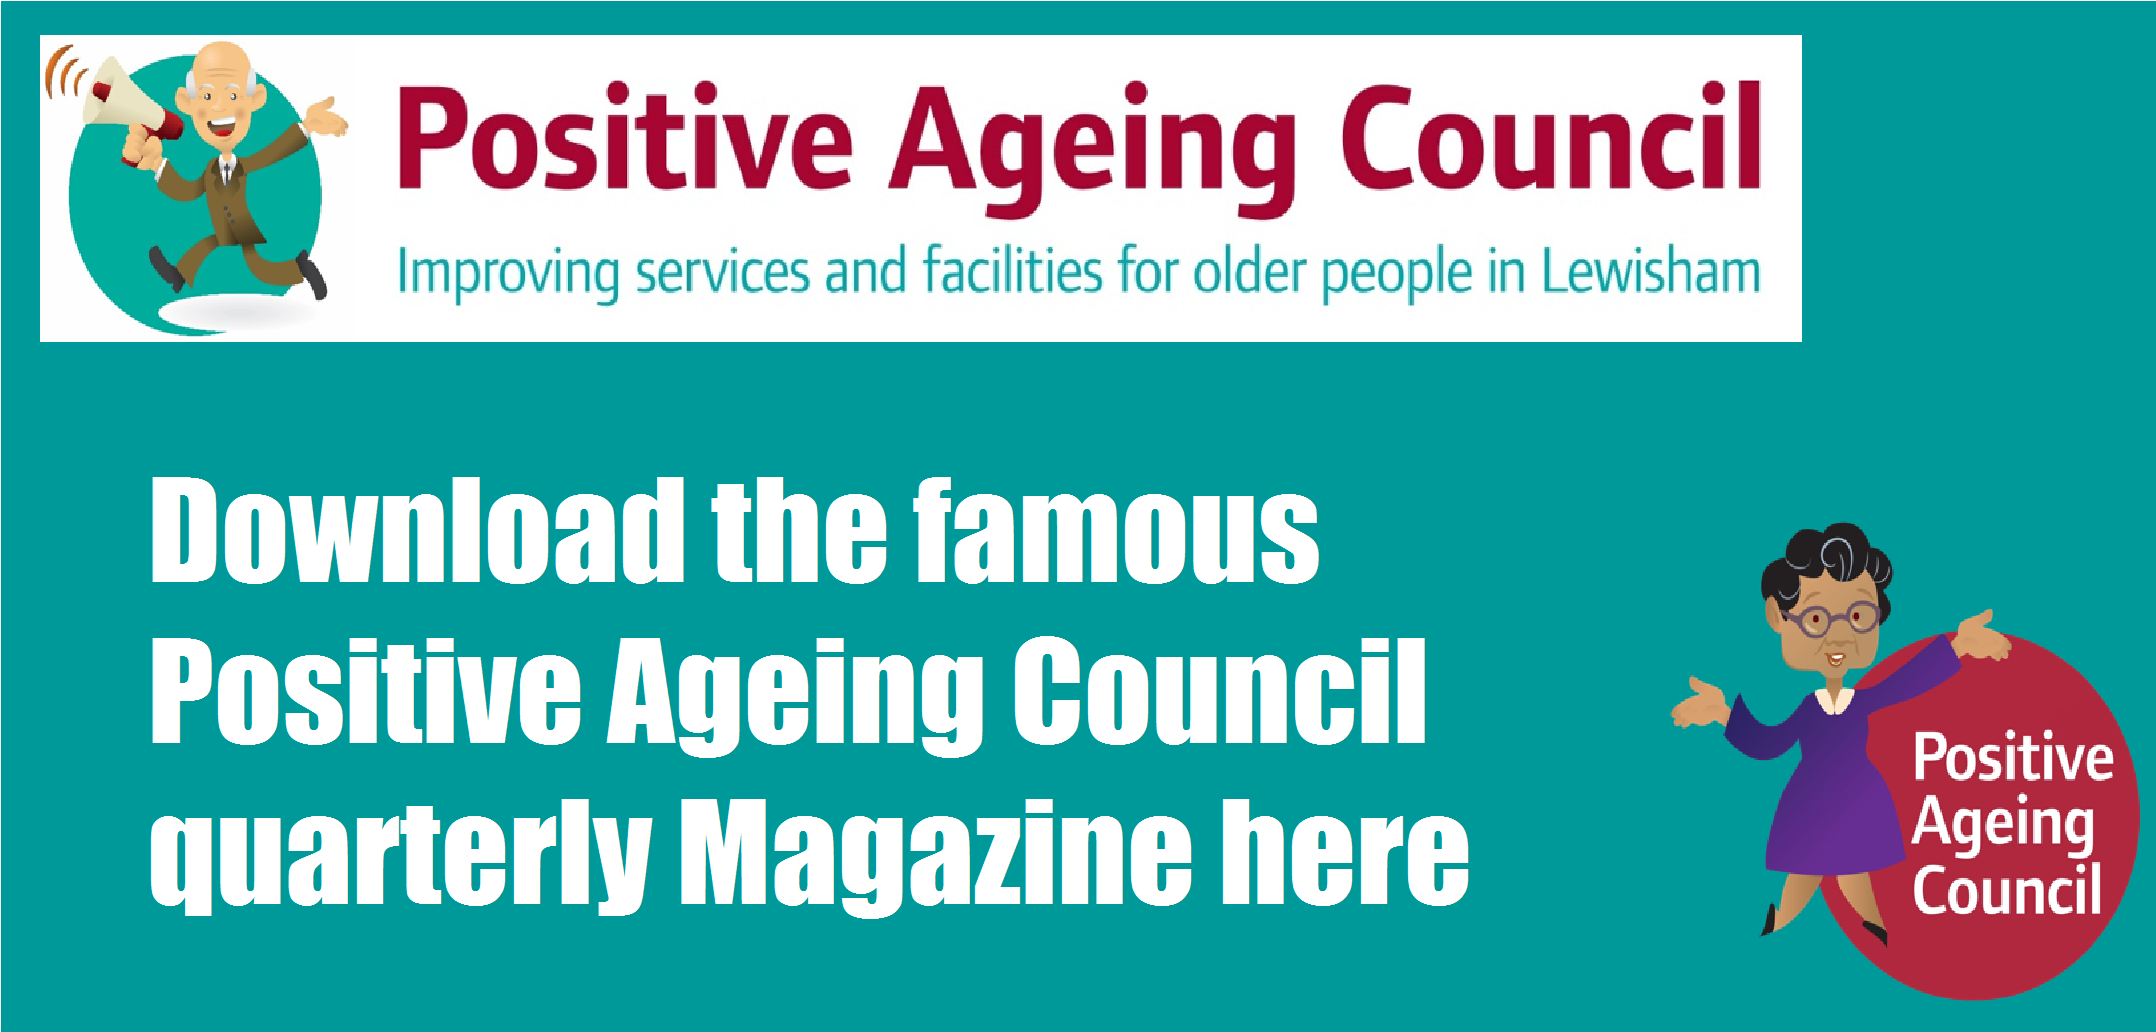 Positive Ageing Council Magazine – Read it online here!